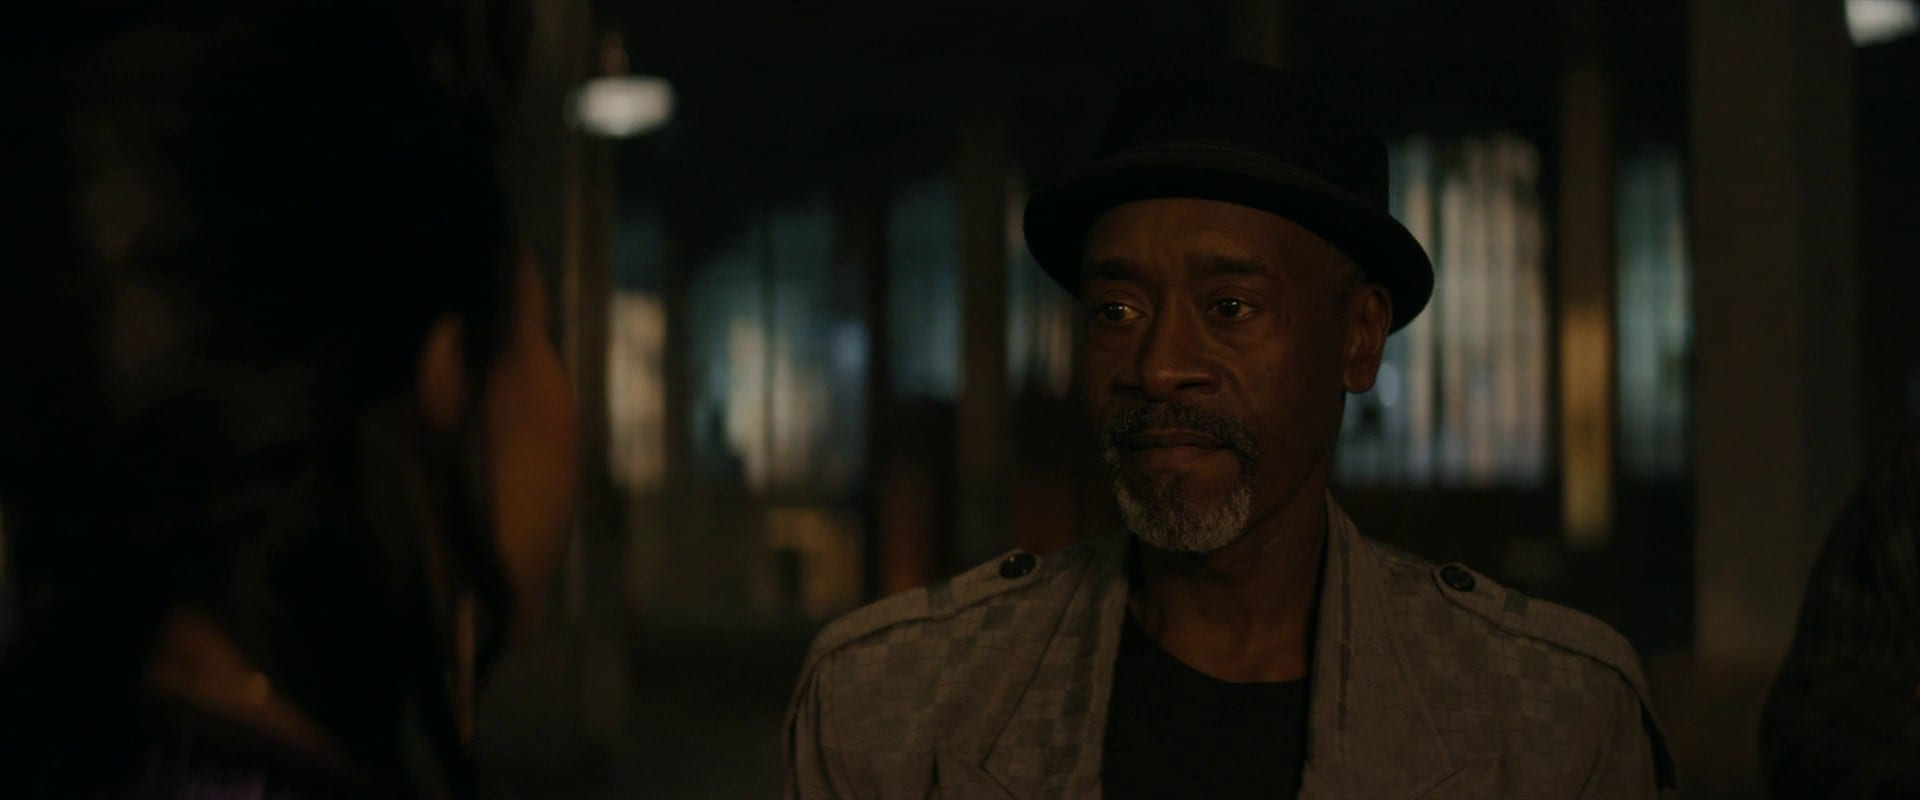 What To Expect From Black Monday S03E07?